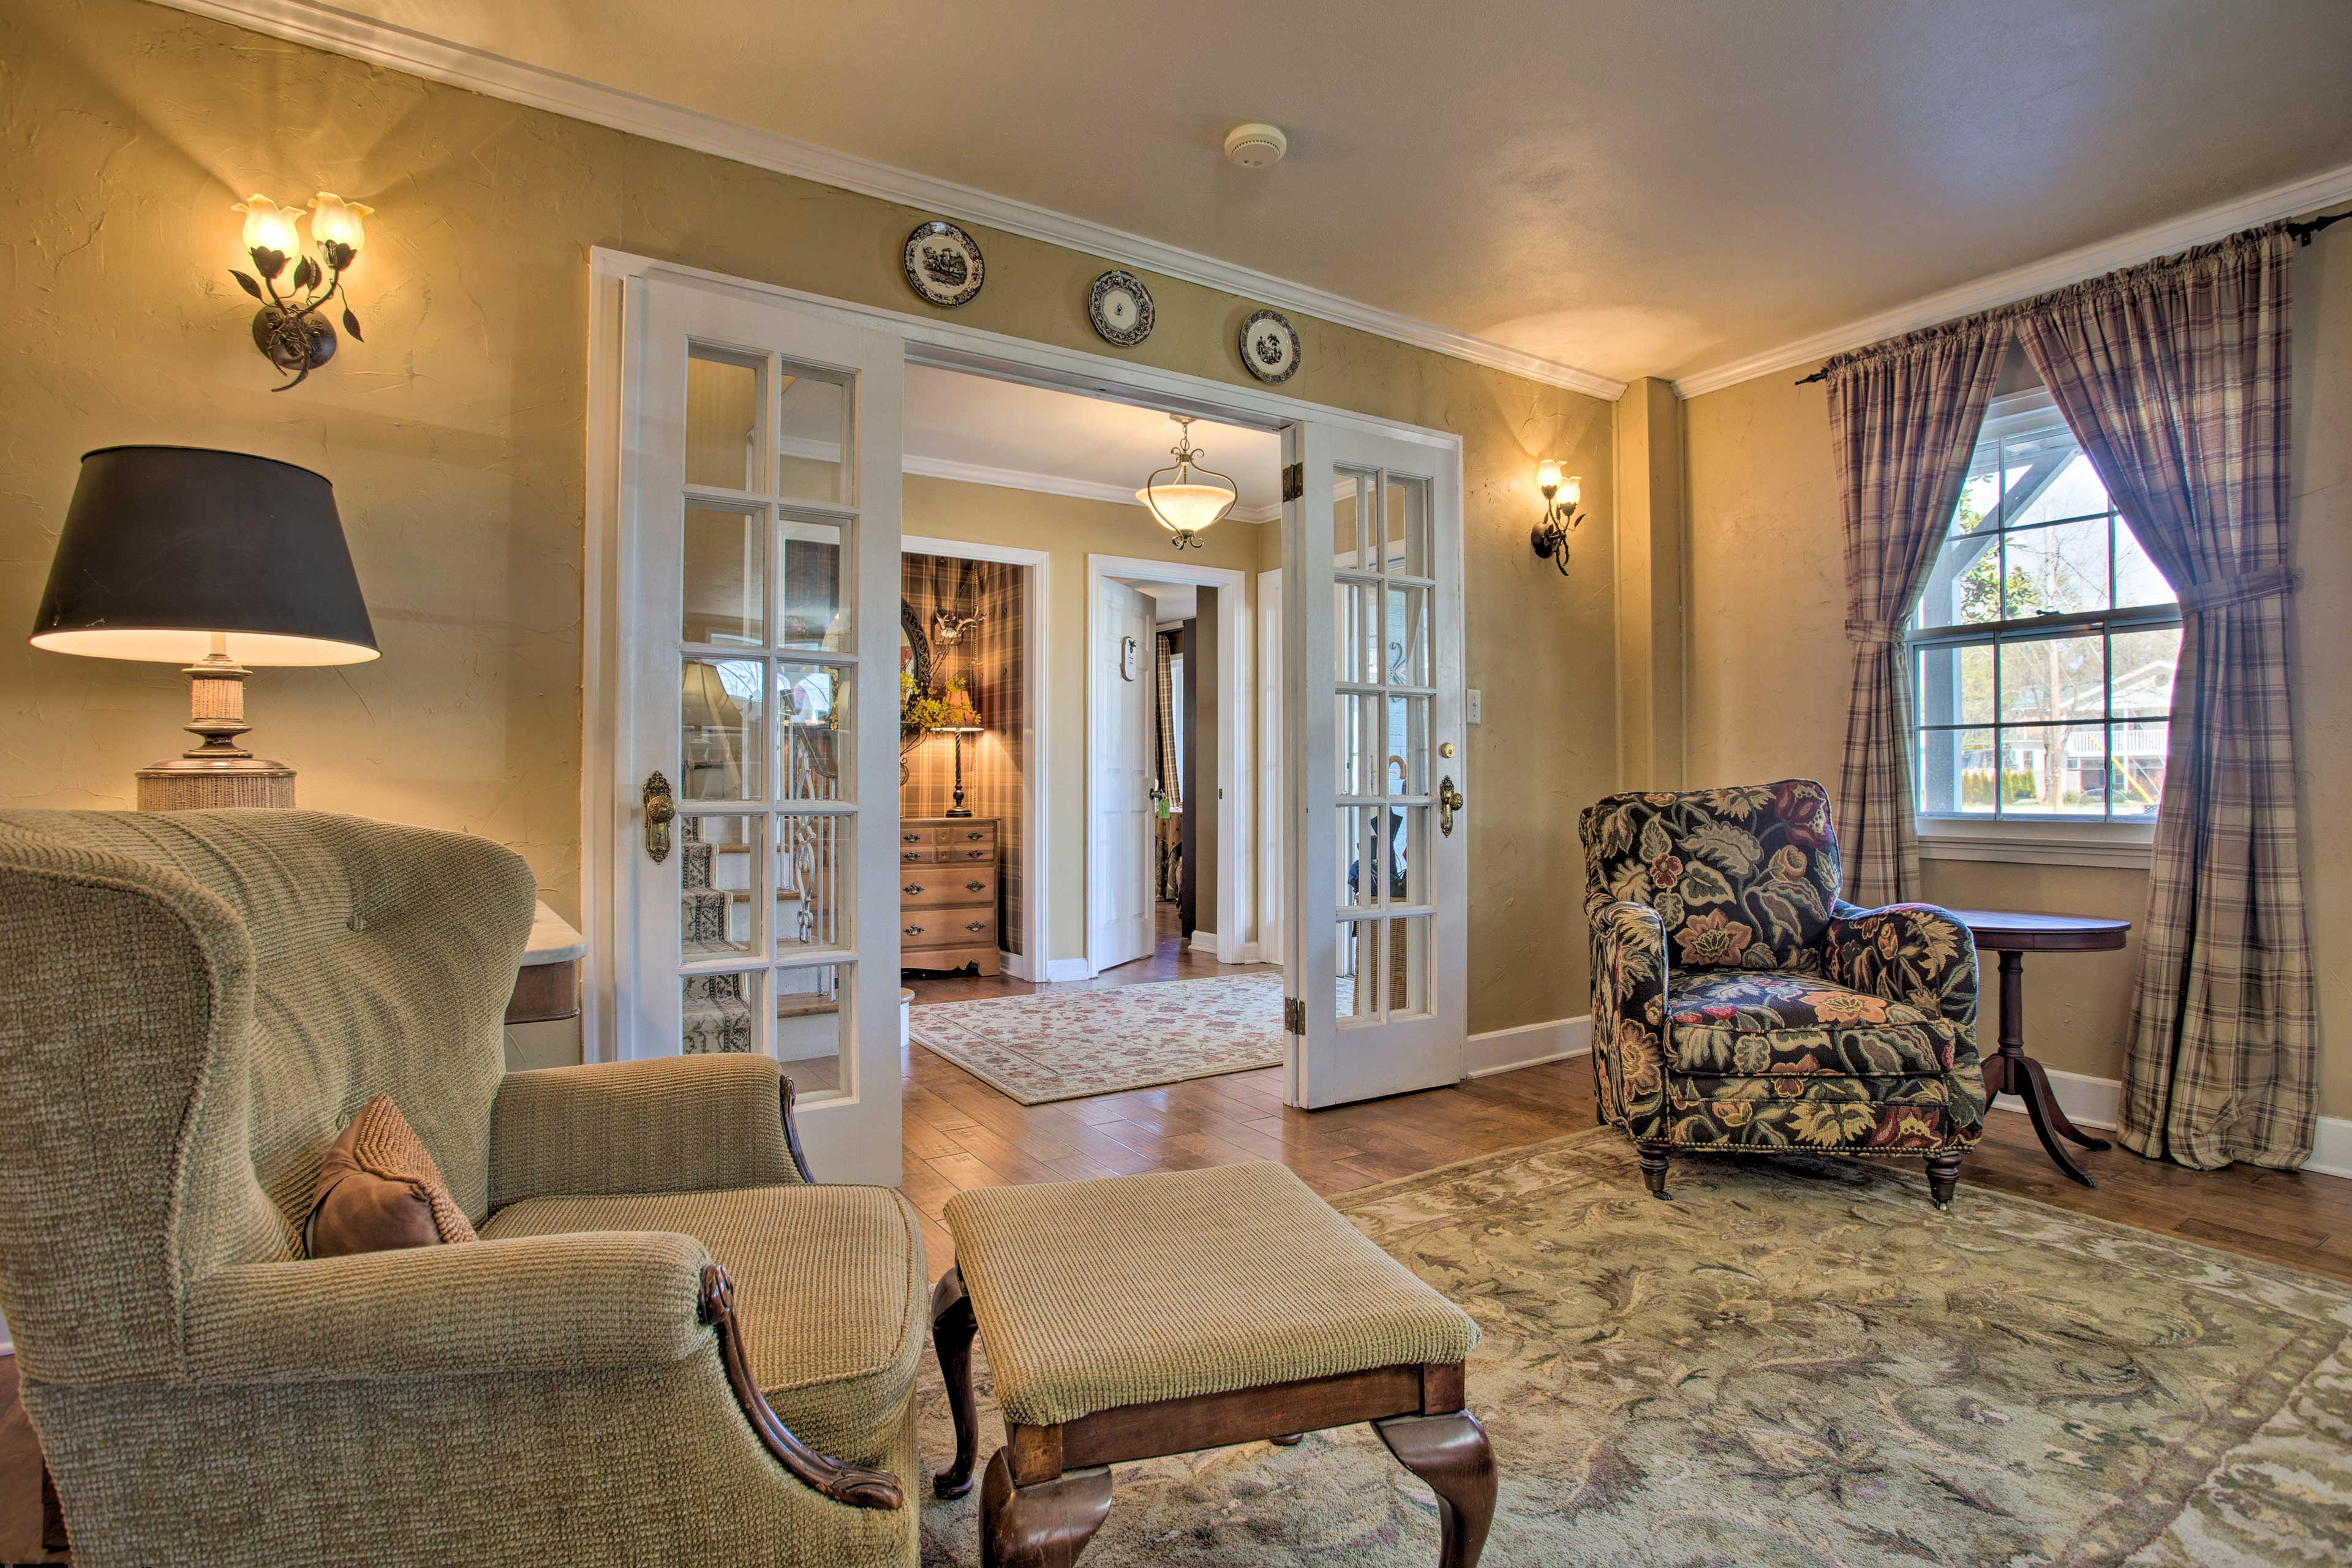 French doors lead to the entryway.